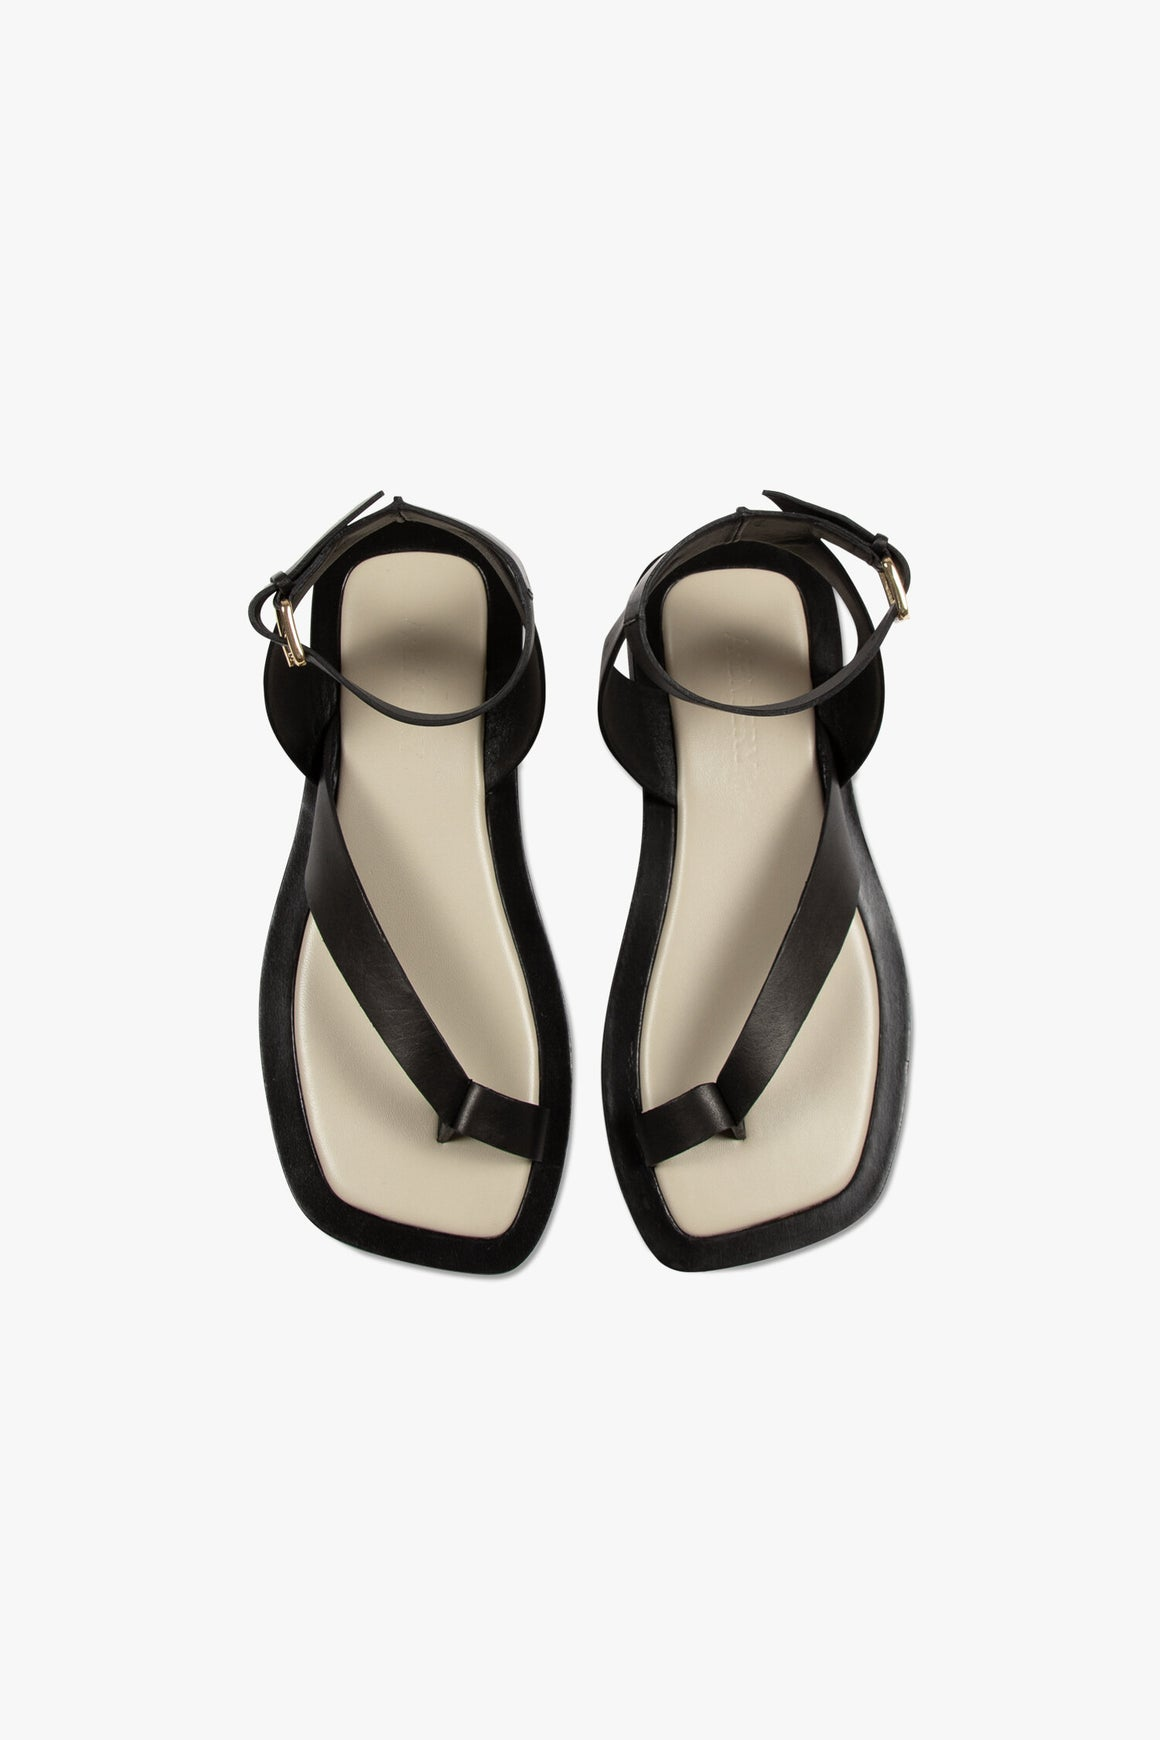 The Asher Sandal